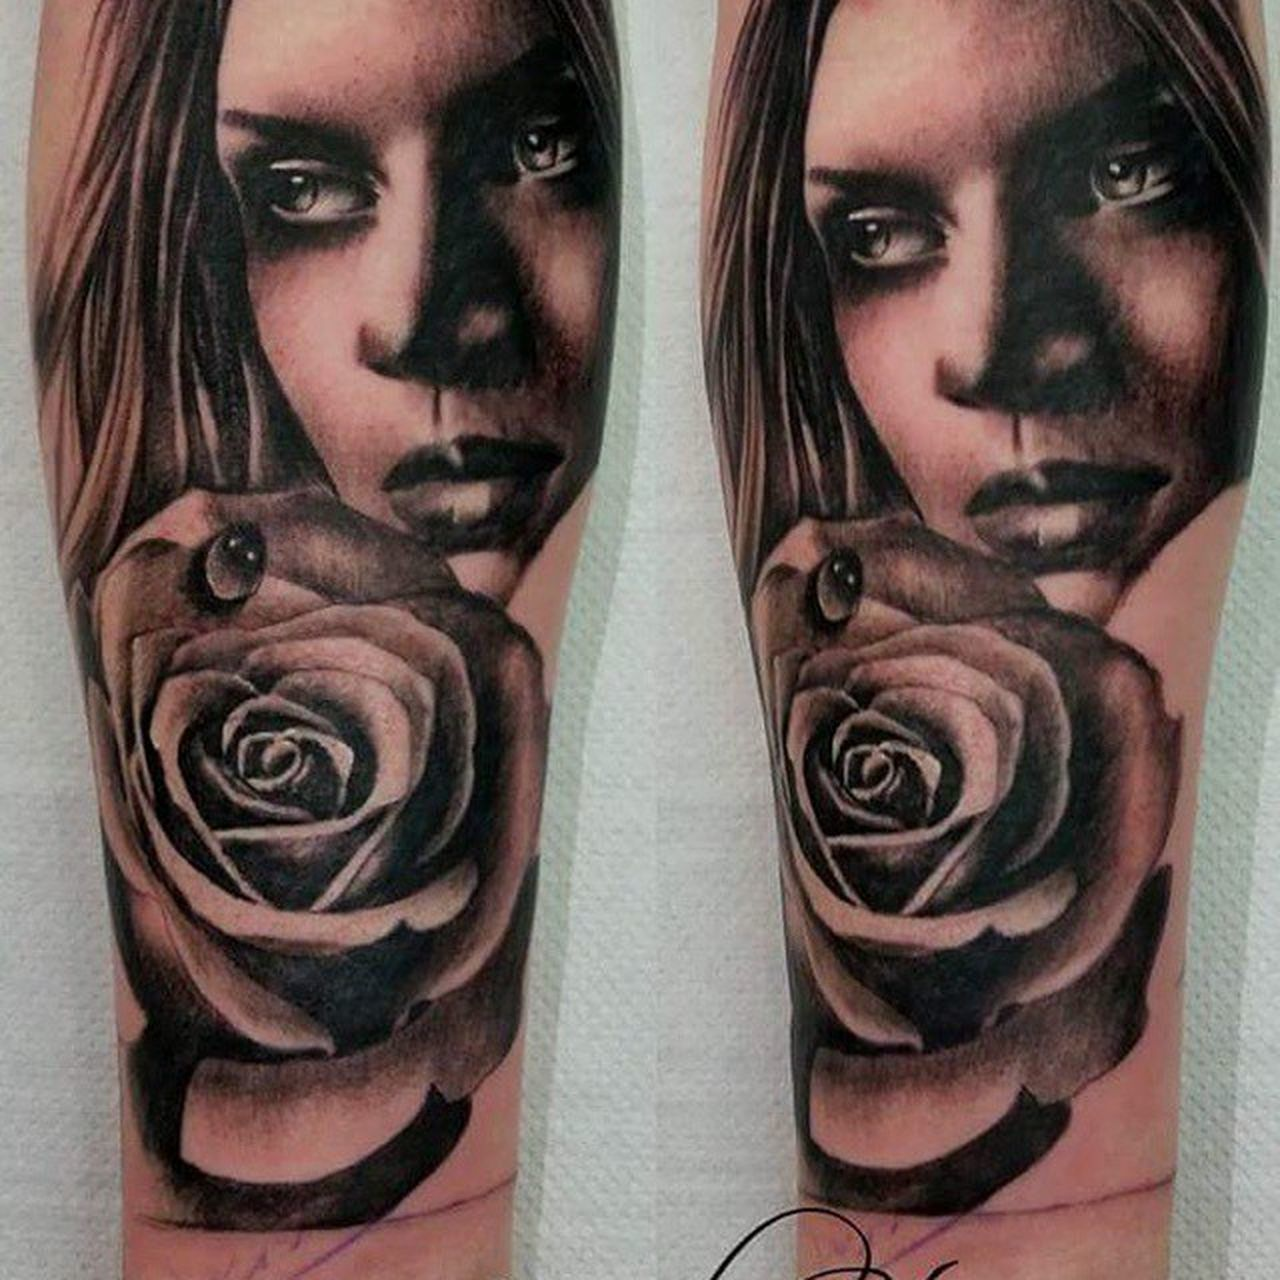 Super sweeeeet piece by karl..... follow us 😊 Tattoo Whiteflame Karlsteventattooist Forearmtattoo Blackandgreyshade Greatjob Nofilter Loveit Femalewithtattoos Femaleportrait Rosé Femanine Soft Tobcontinued Karlstevens